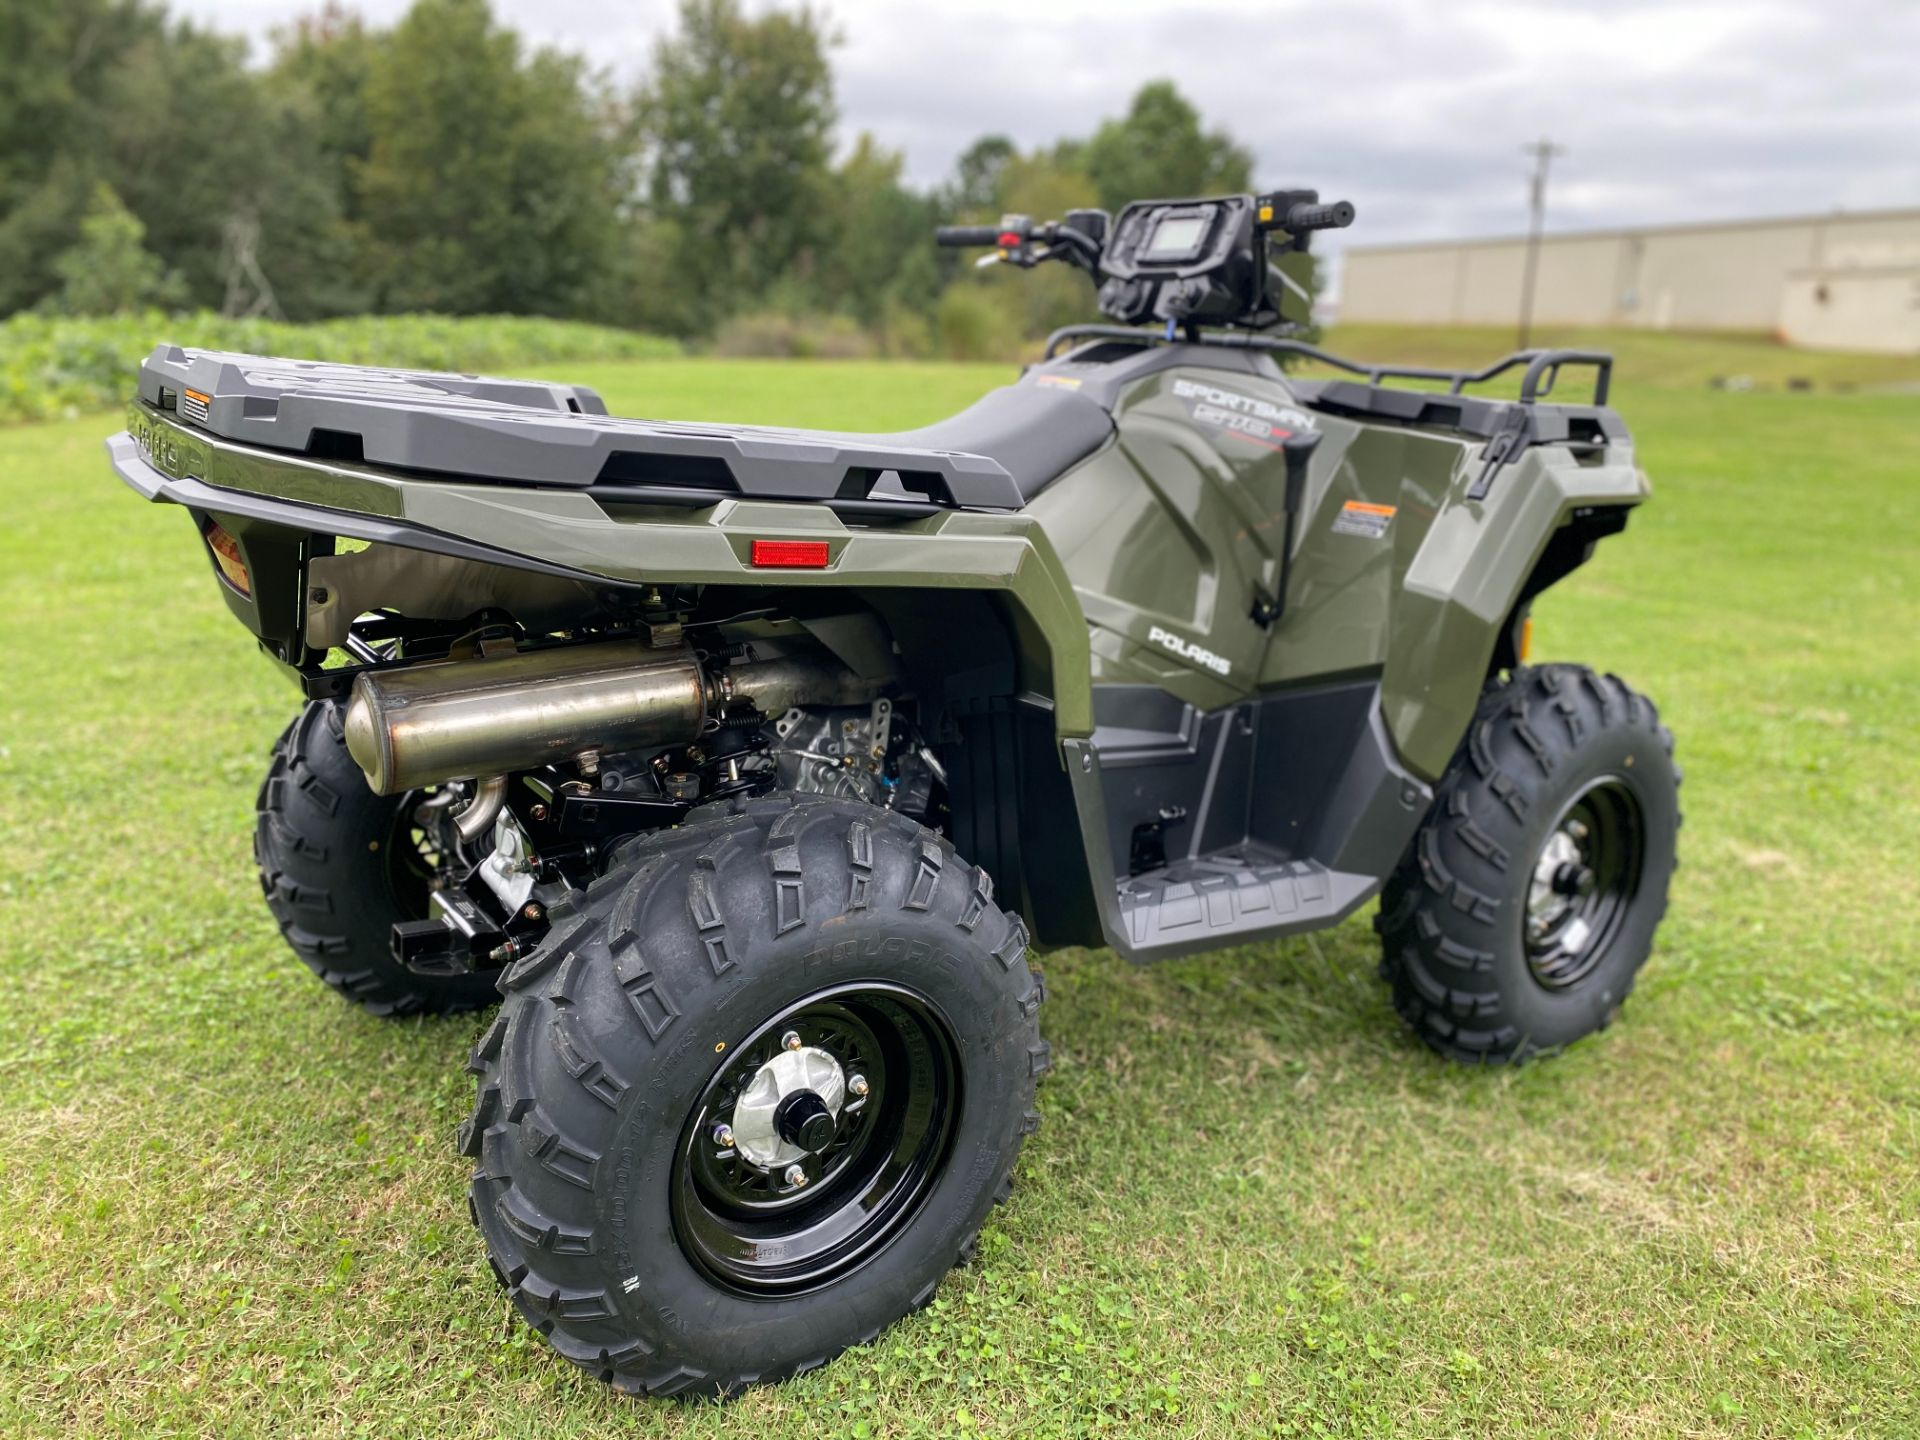 2021 Polaris Sportsman 570 in Greer, South Carolina - Photo 7